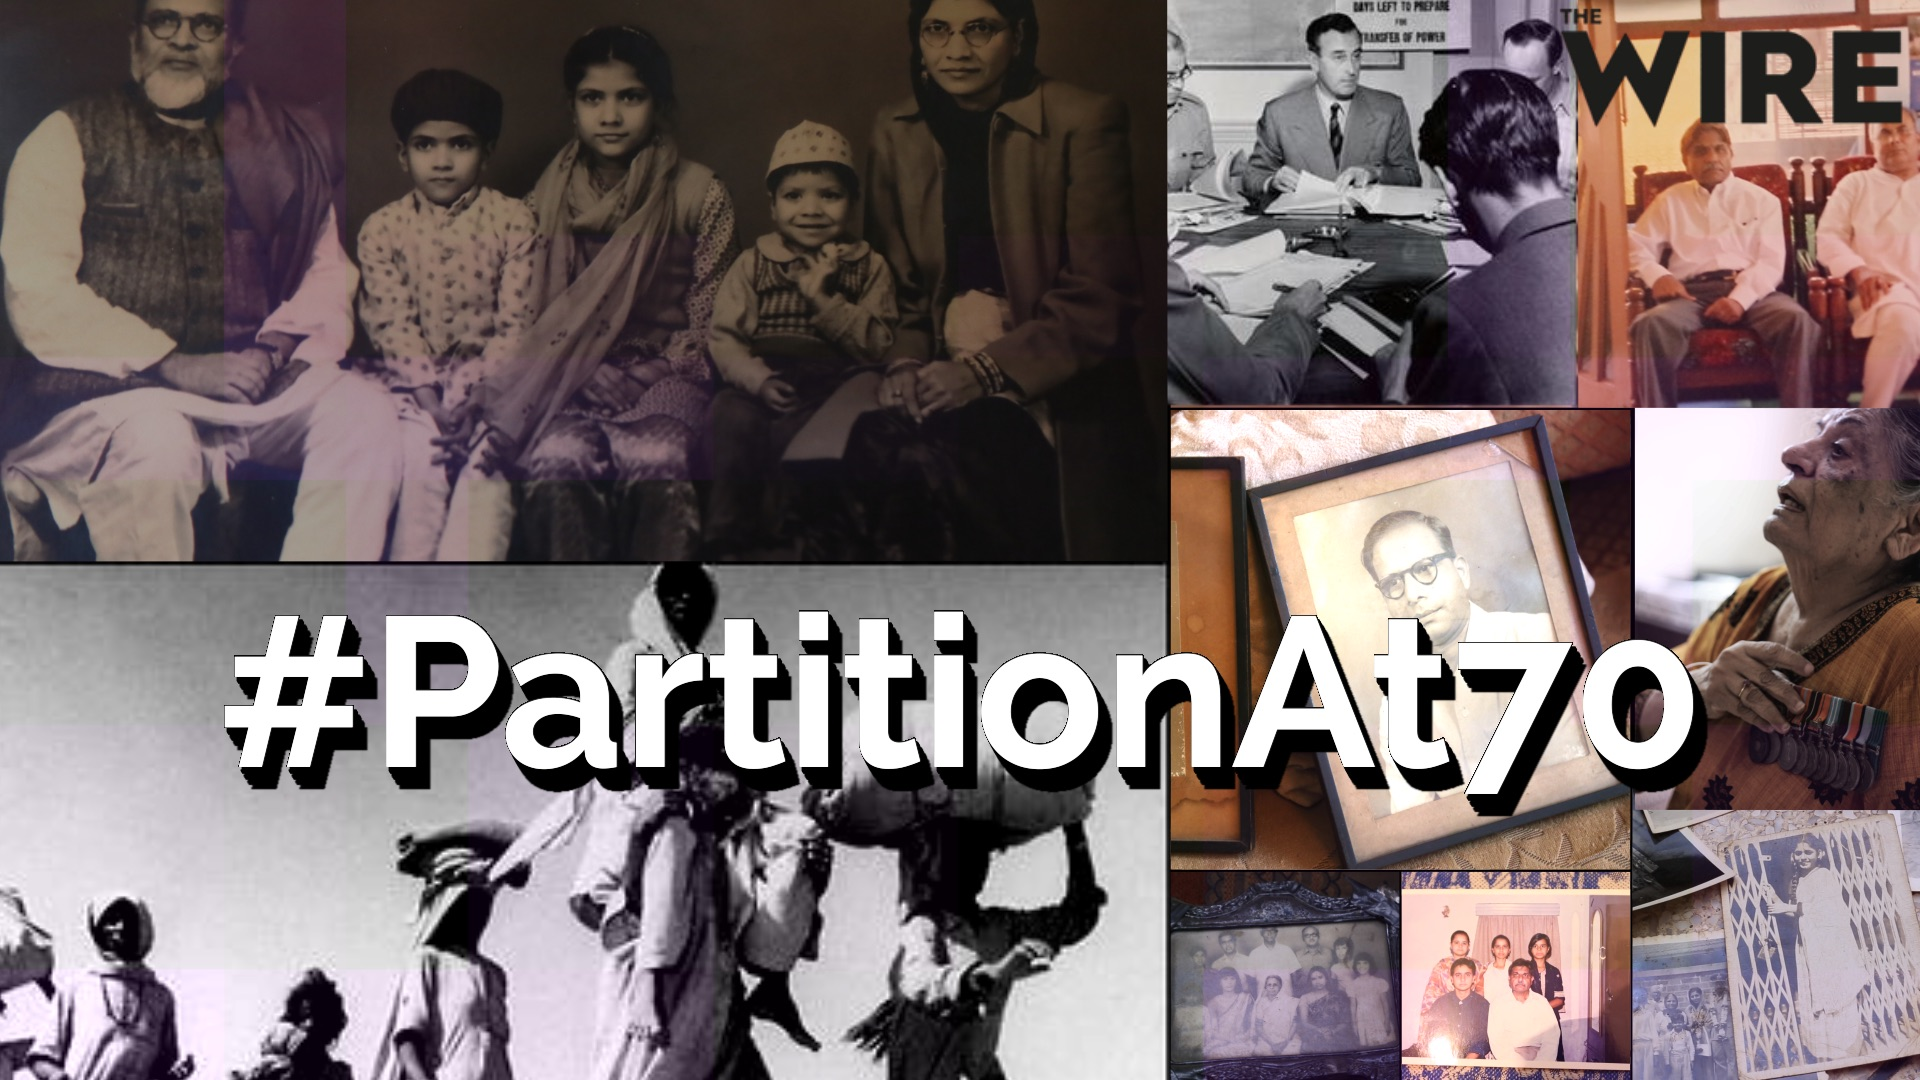 Partition At 70